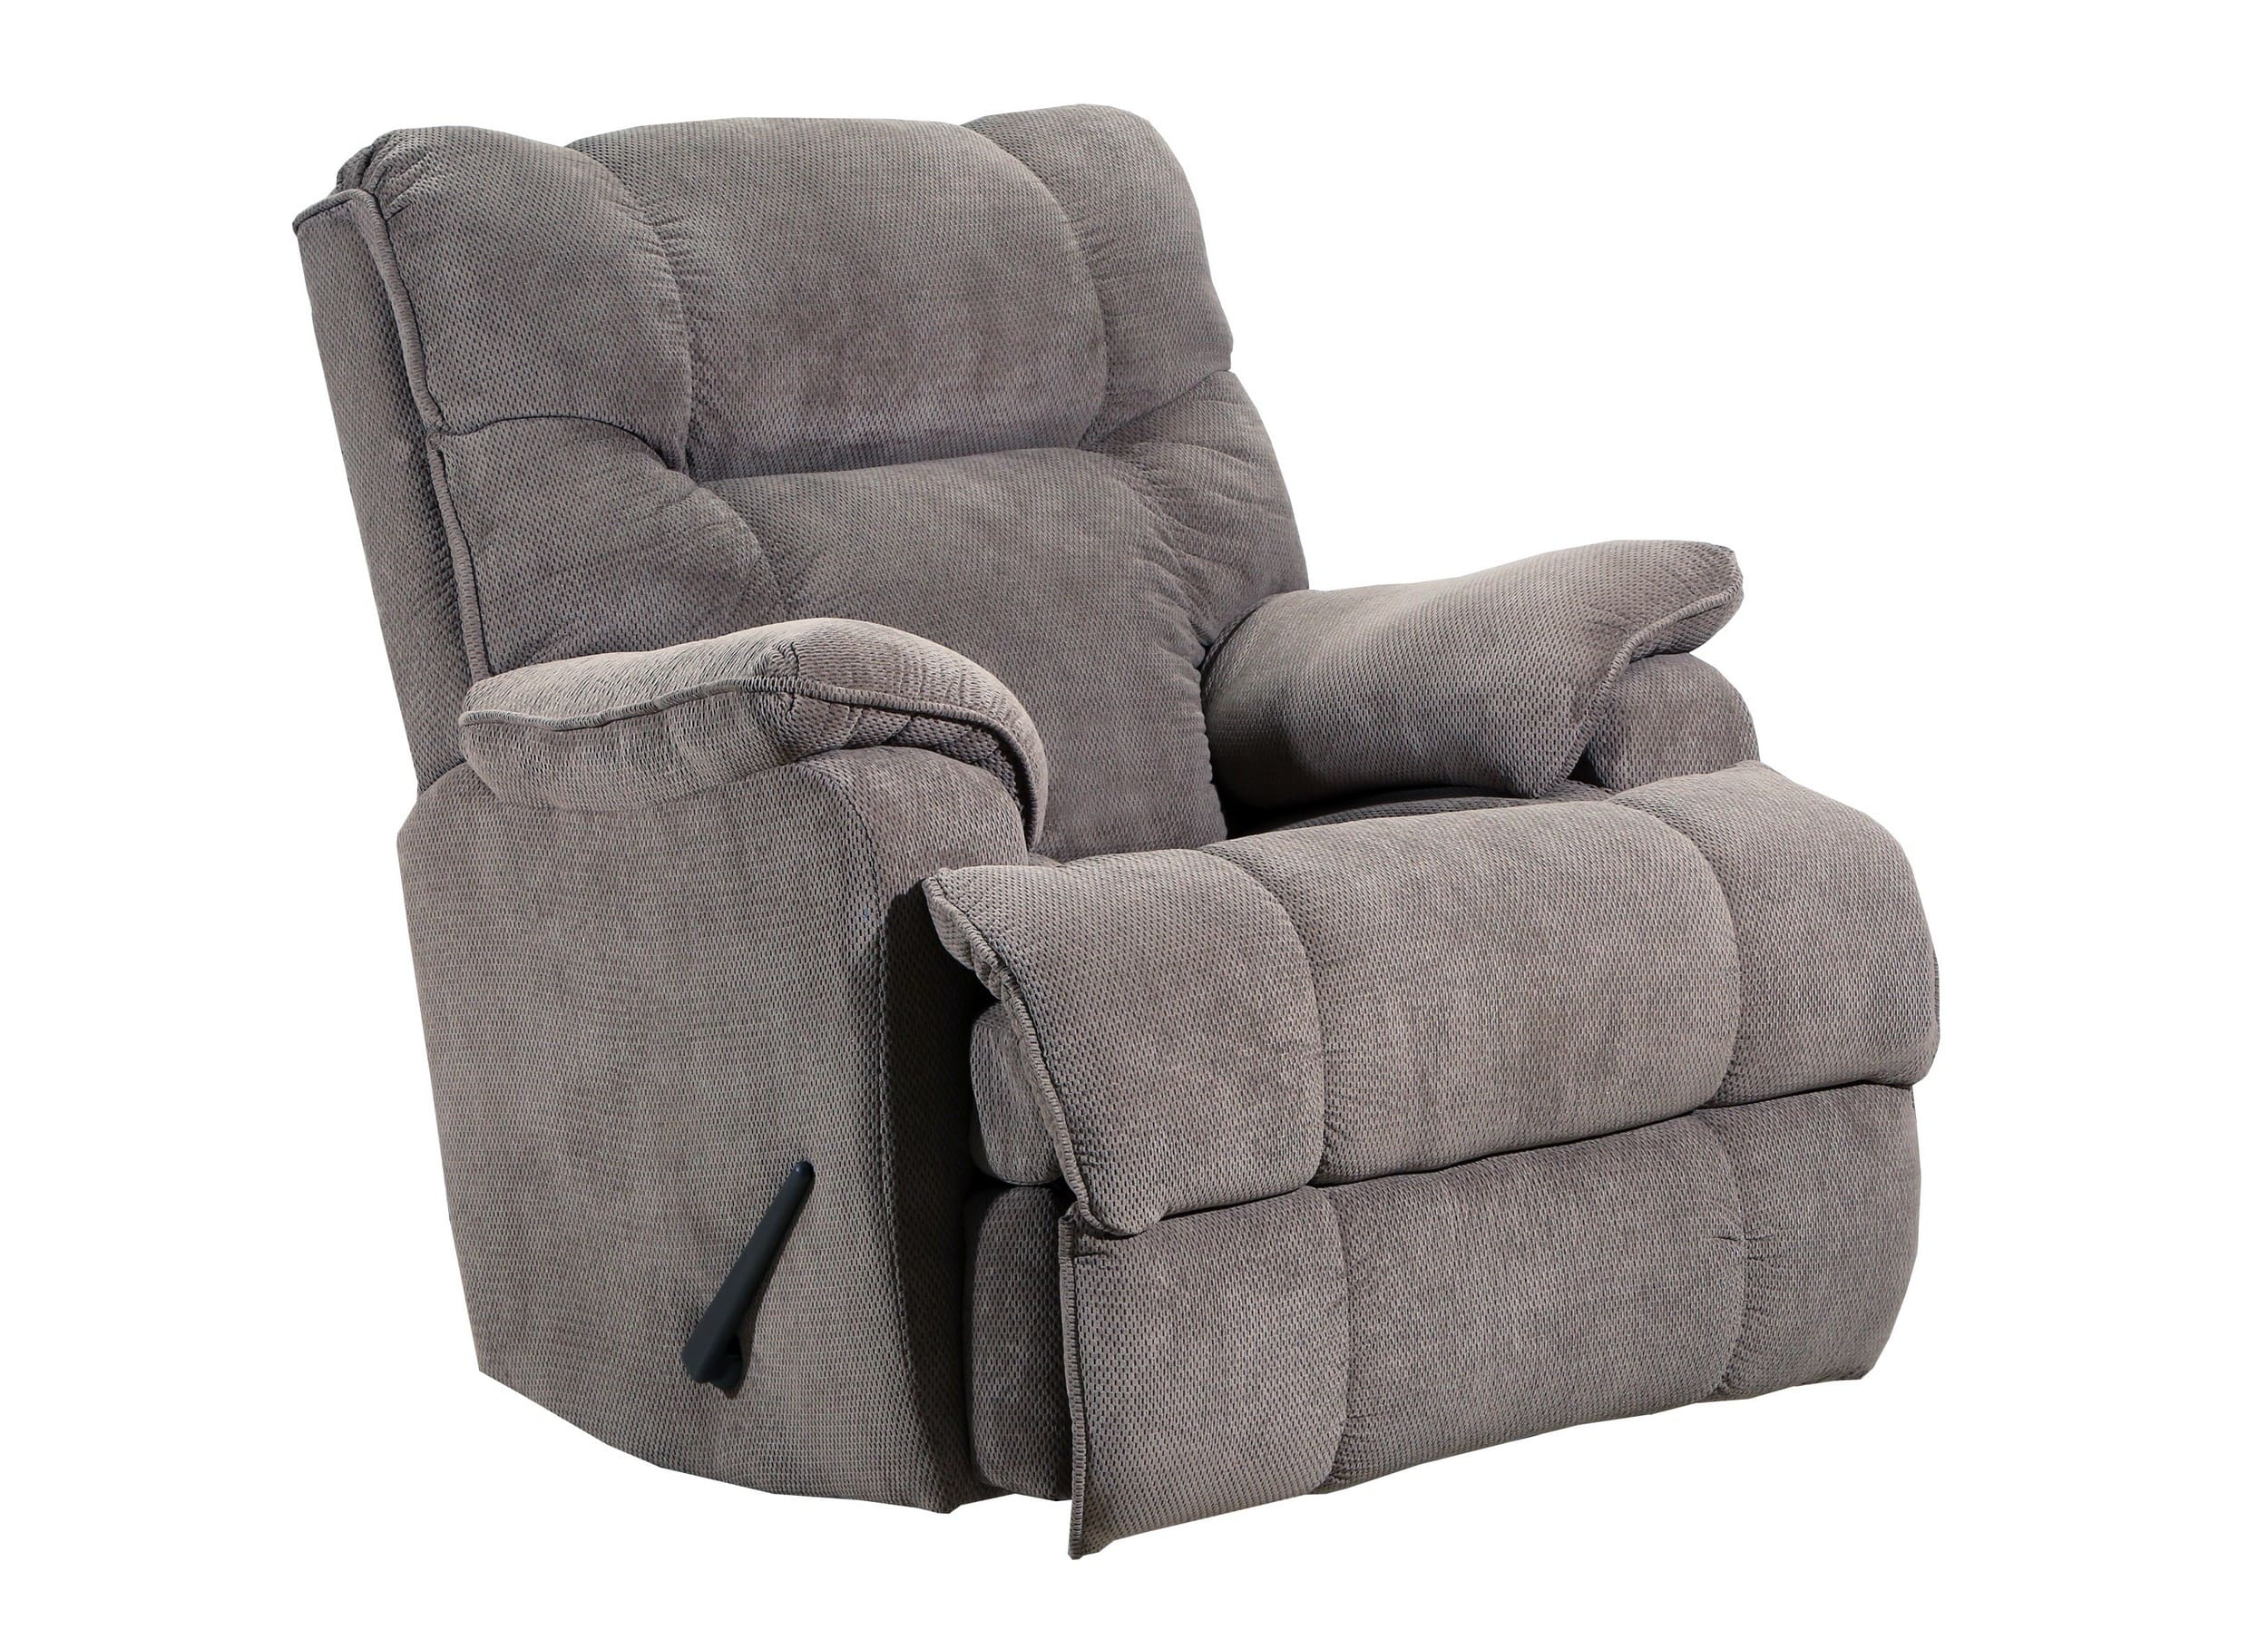 Lane Furniture Rancho Dark Reverve Pewter Wall Saver Recliner